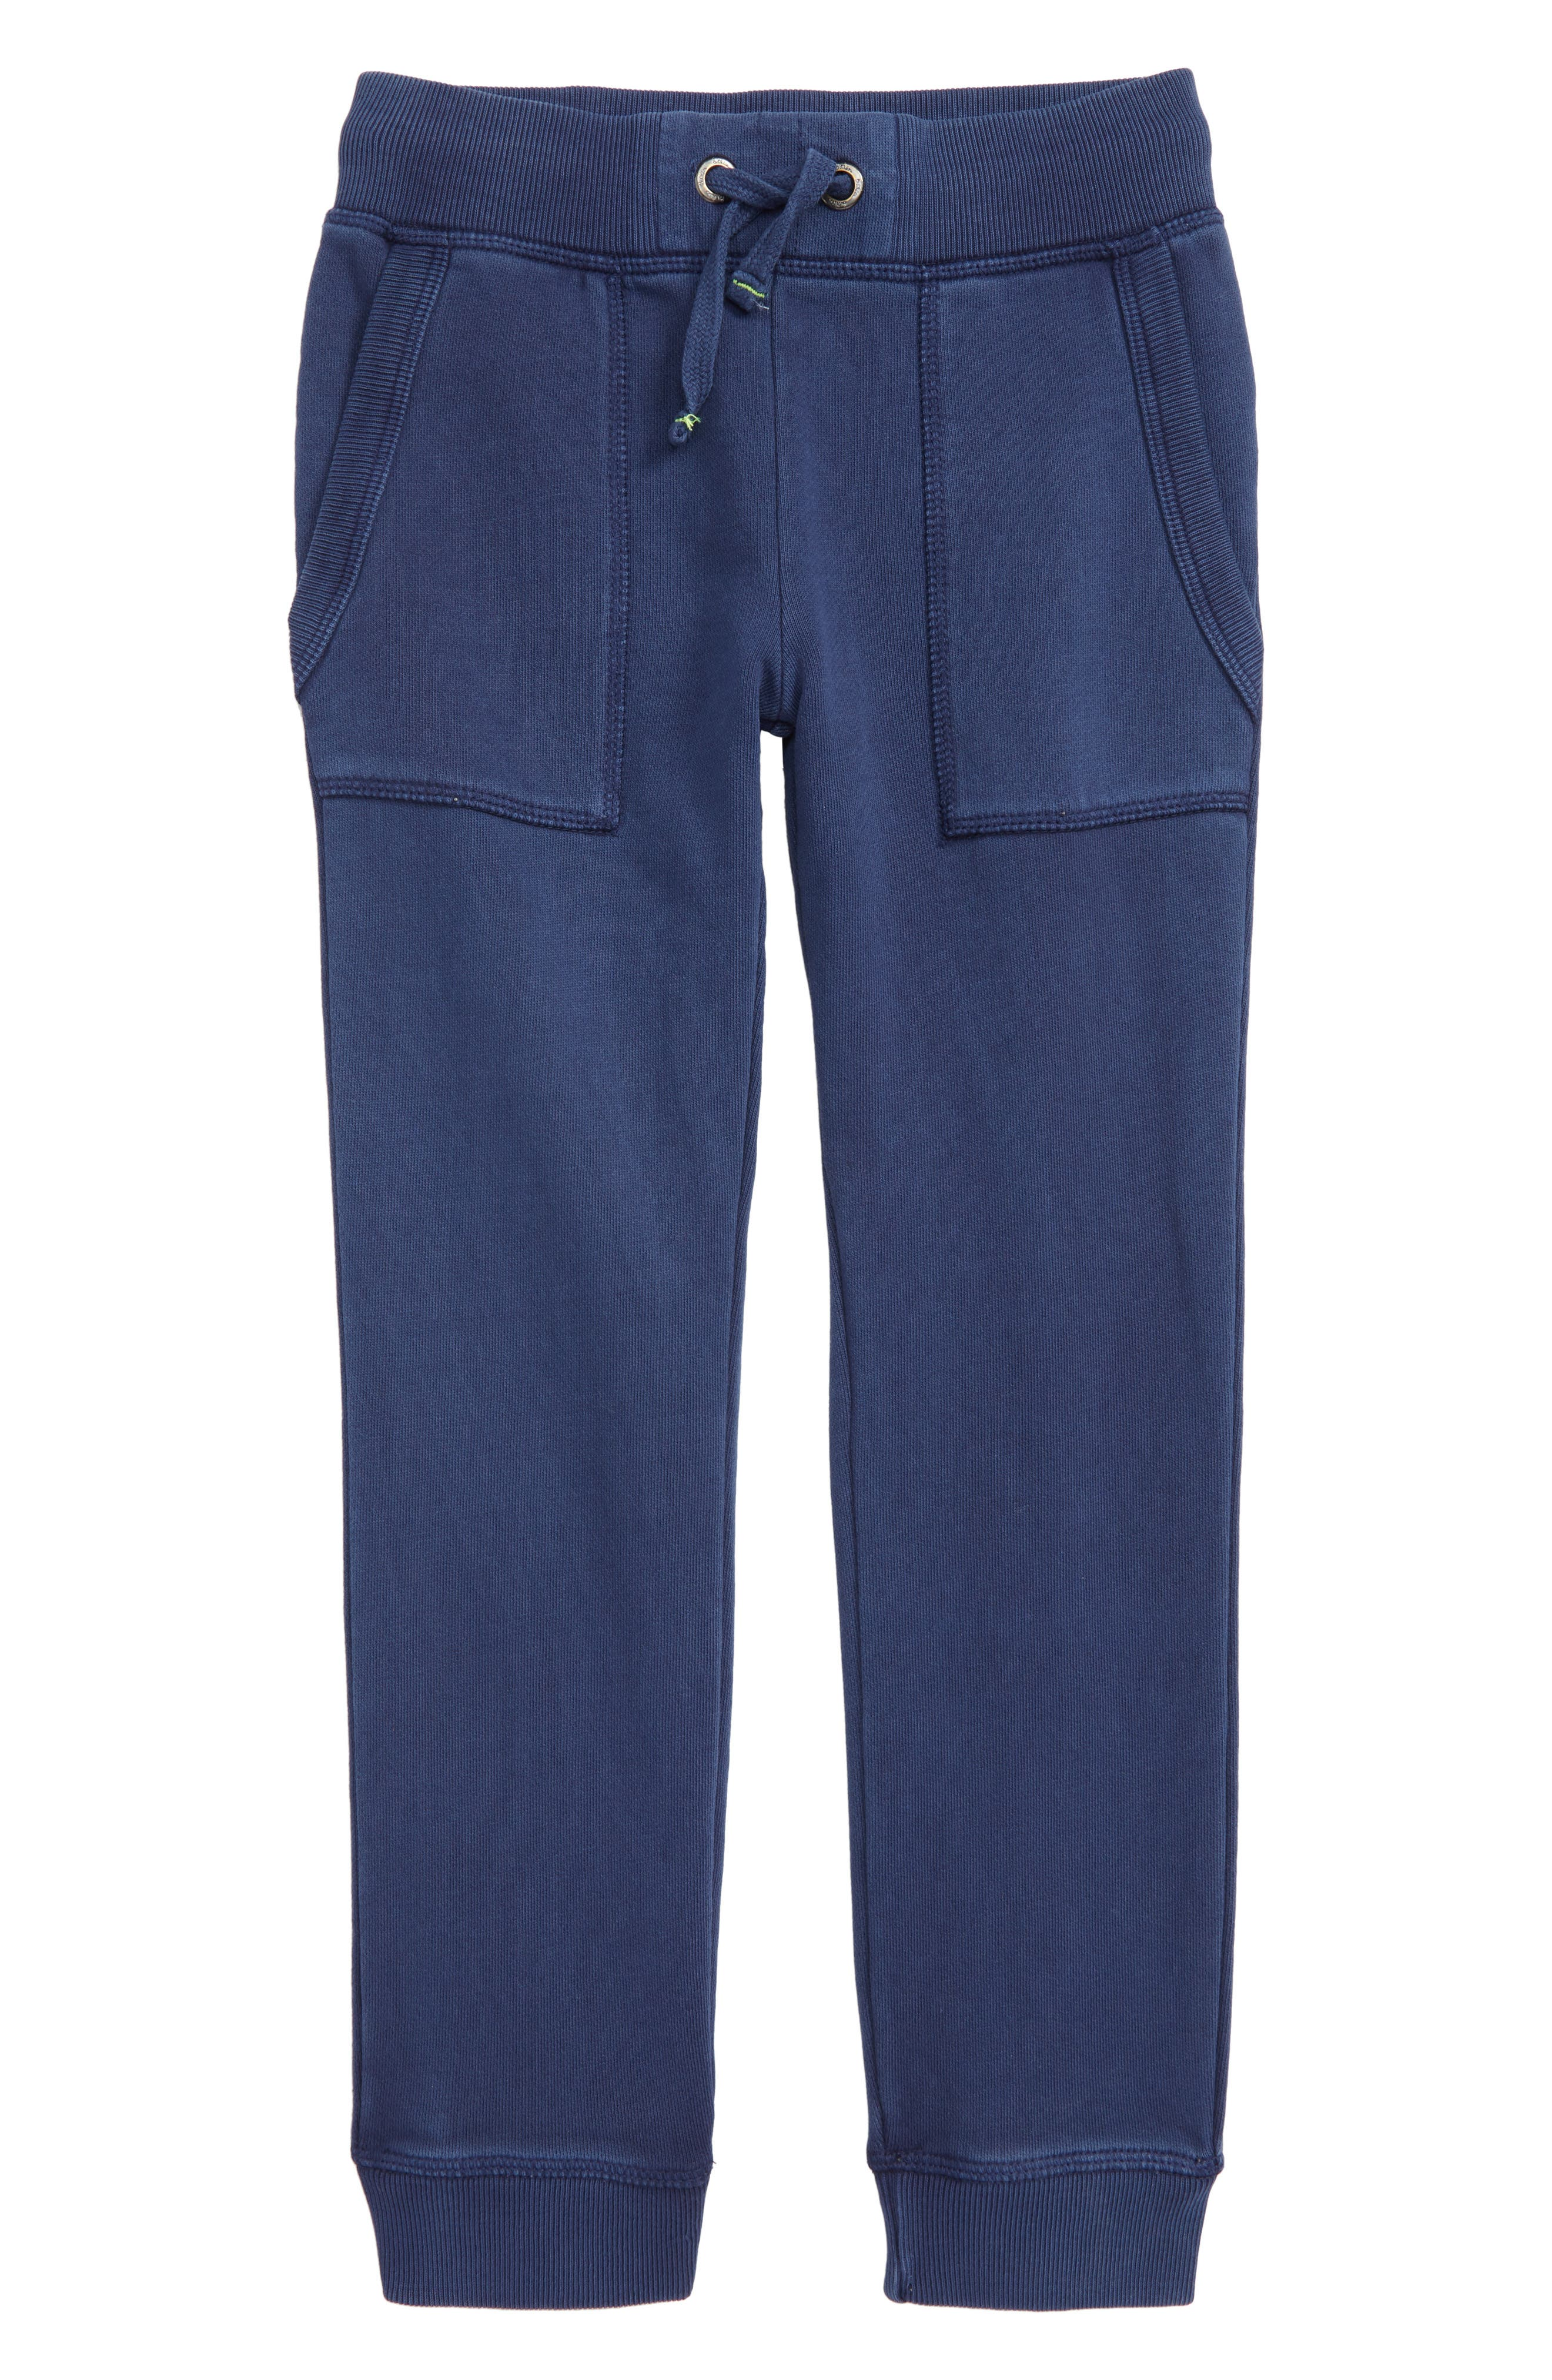 Toddler Boys Mini Boden Everyday Jogger Pants Size 3Y  Blue